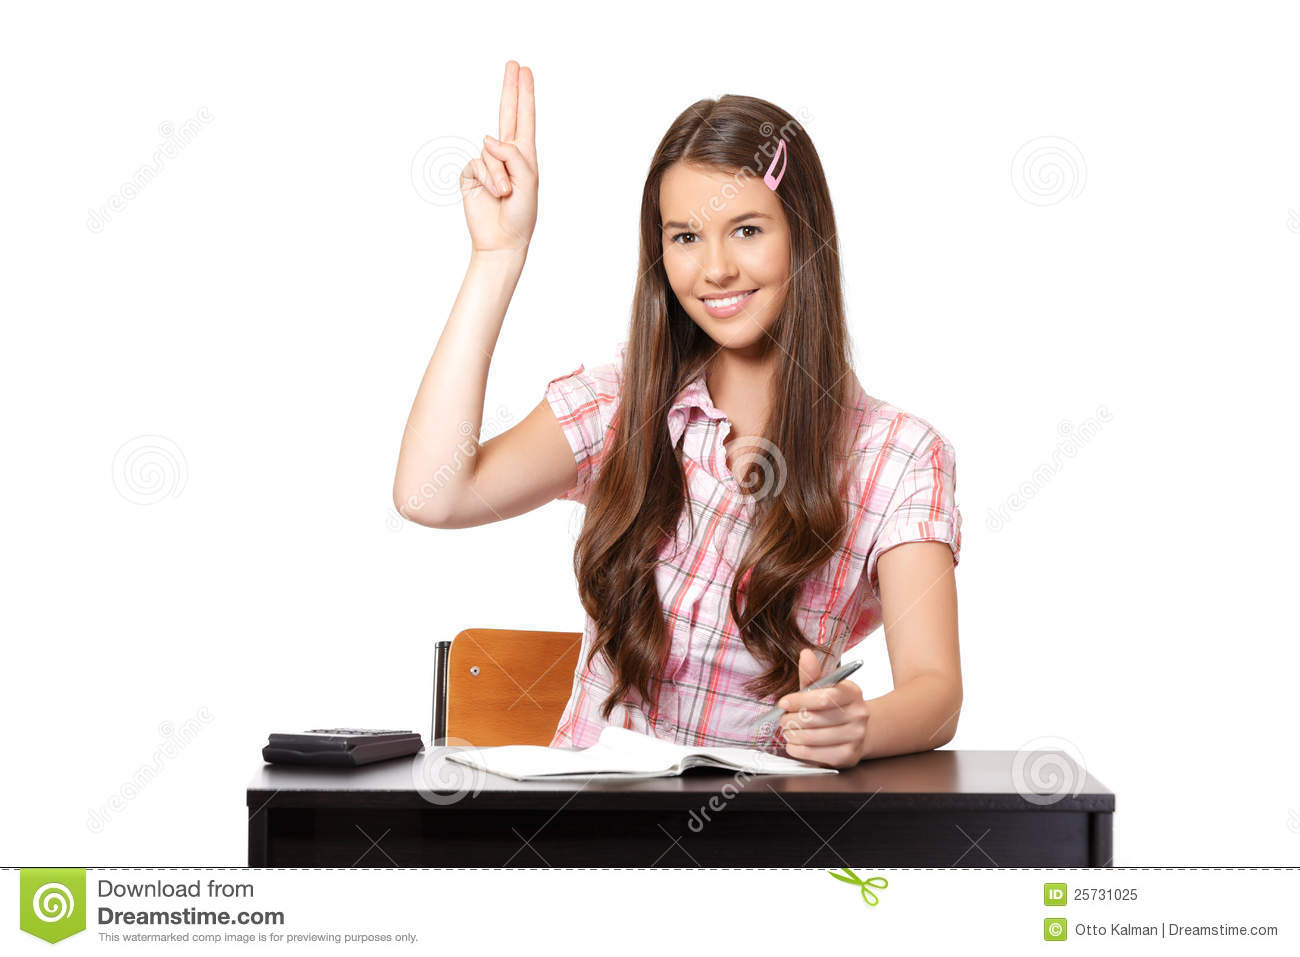 Teenager sitting in classroom with raisedhand